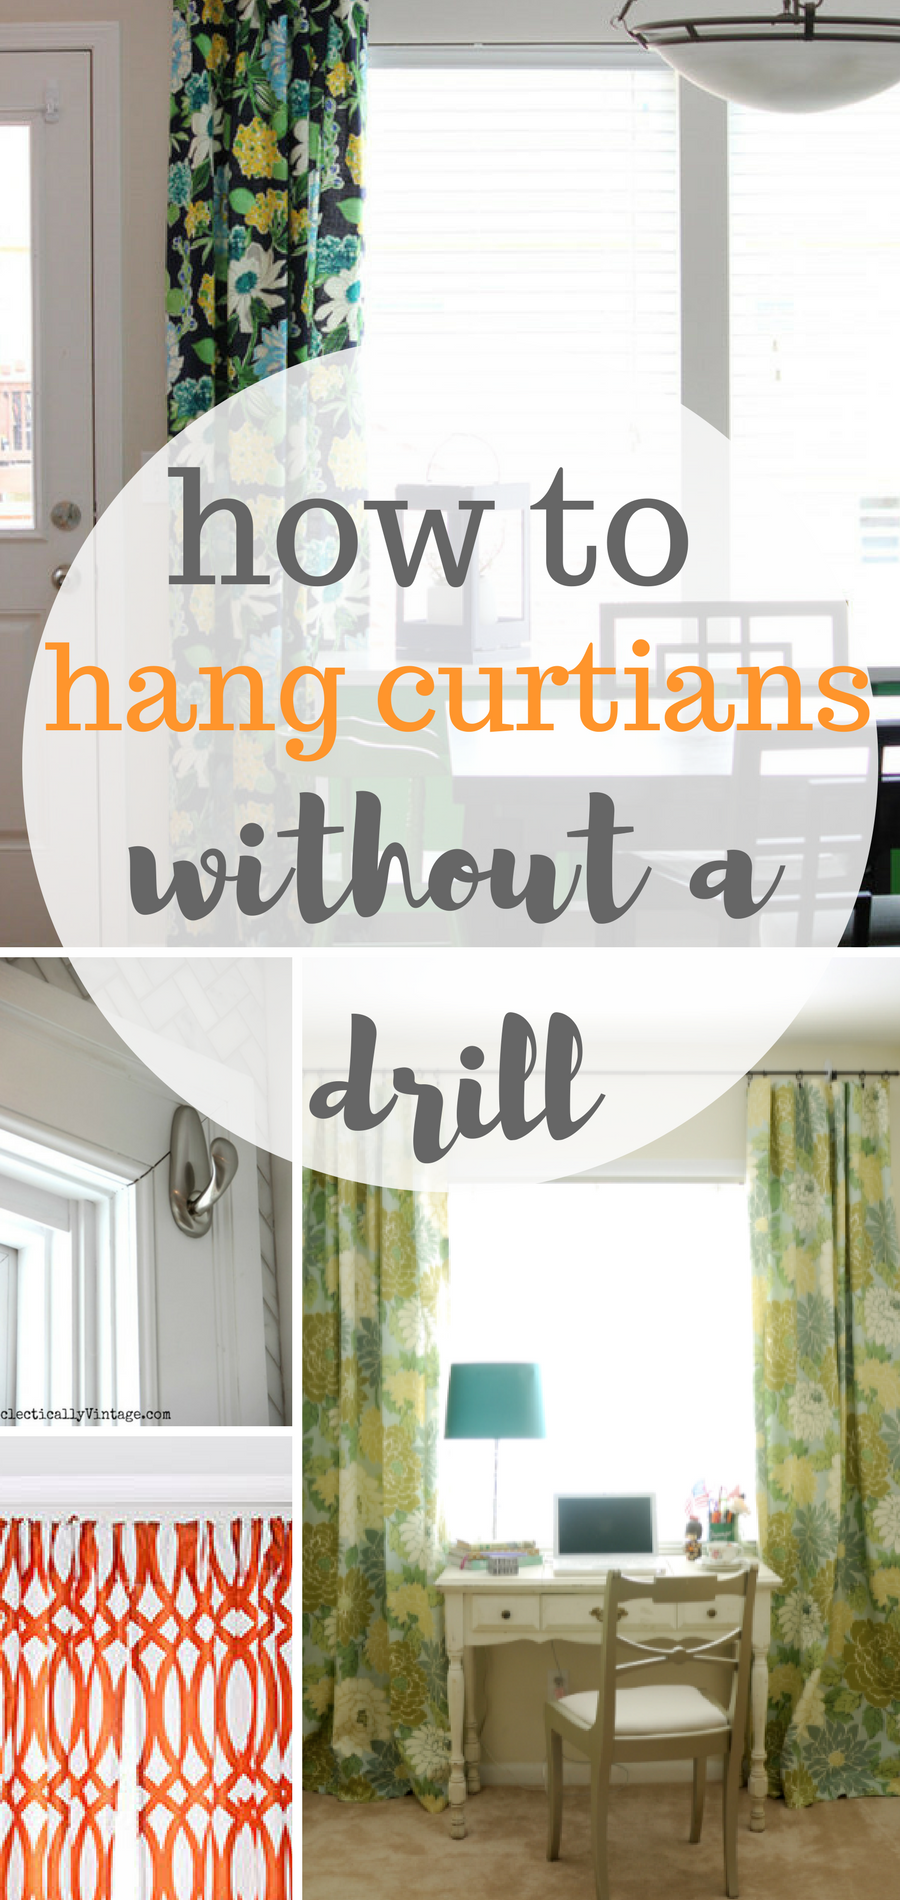 How to hang your curtains without a drill interior design